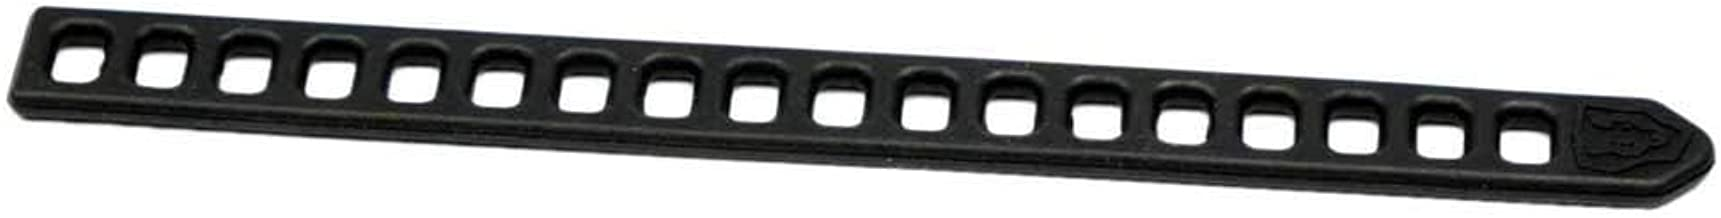 Lupine Rubber Band Rotlicht Long One Size